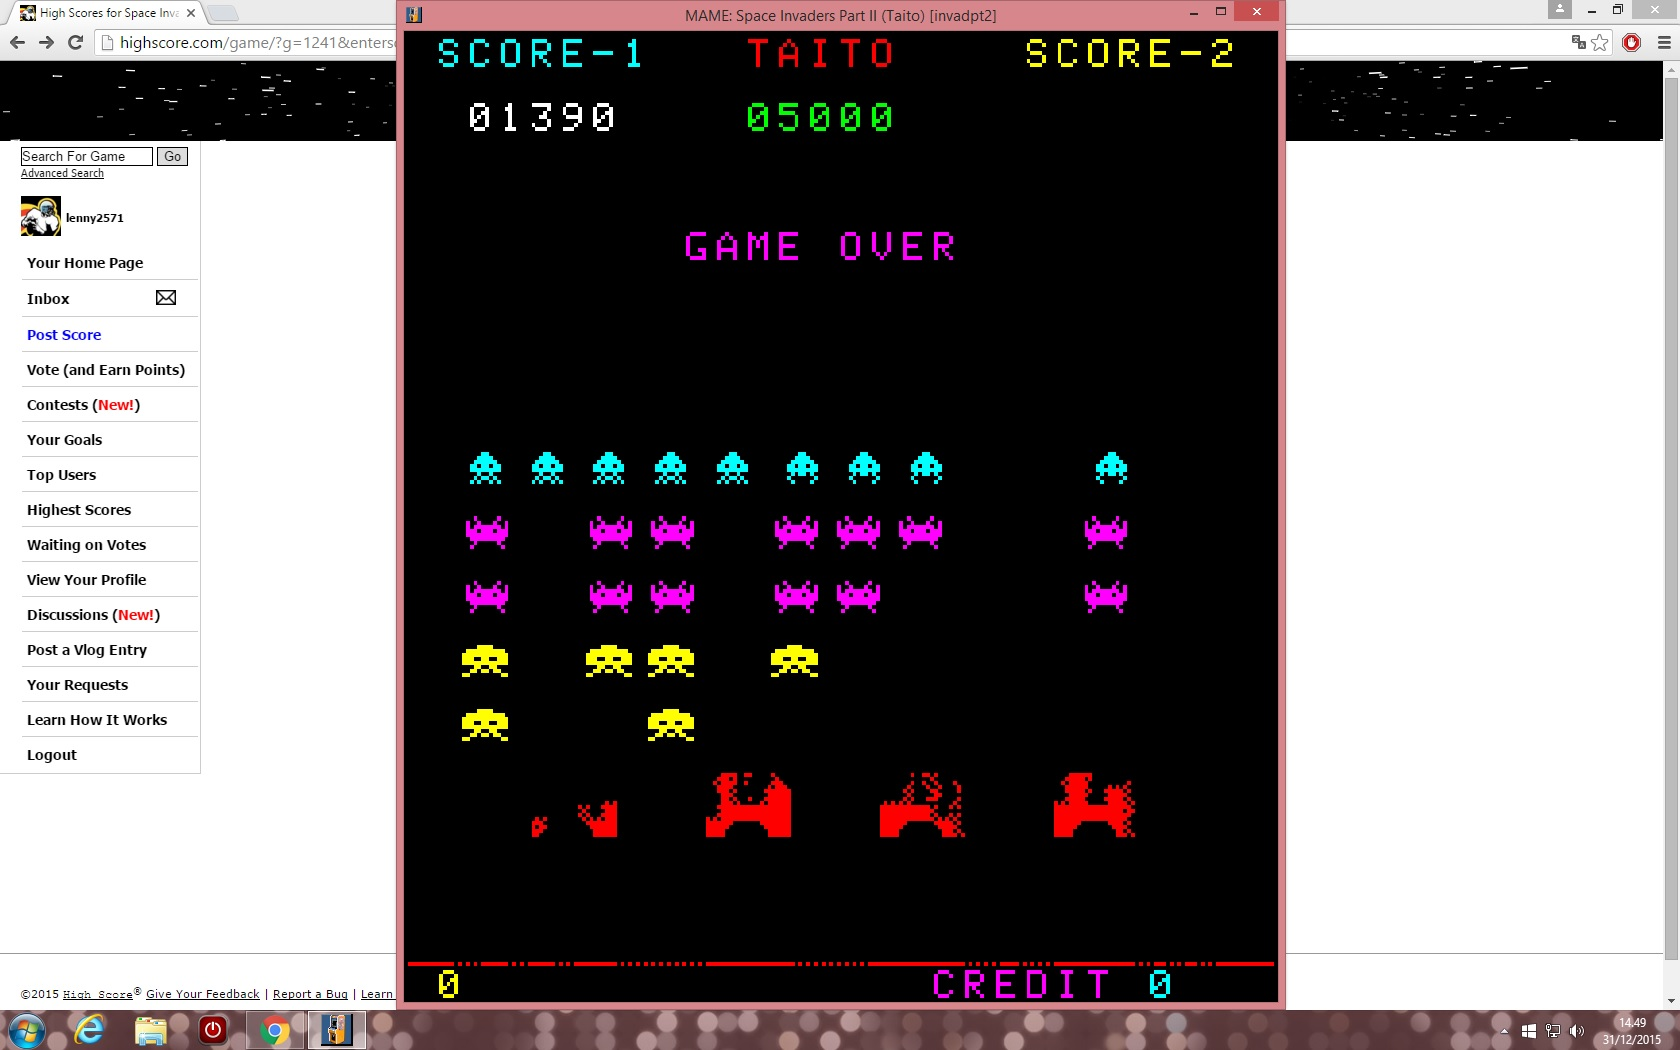 Space Invaders 1,390 points